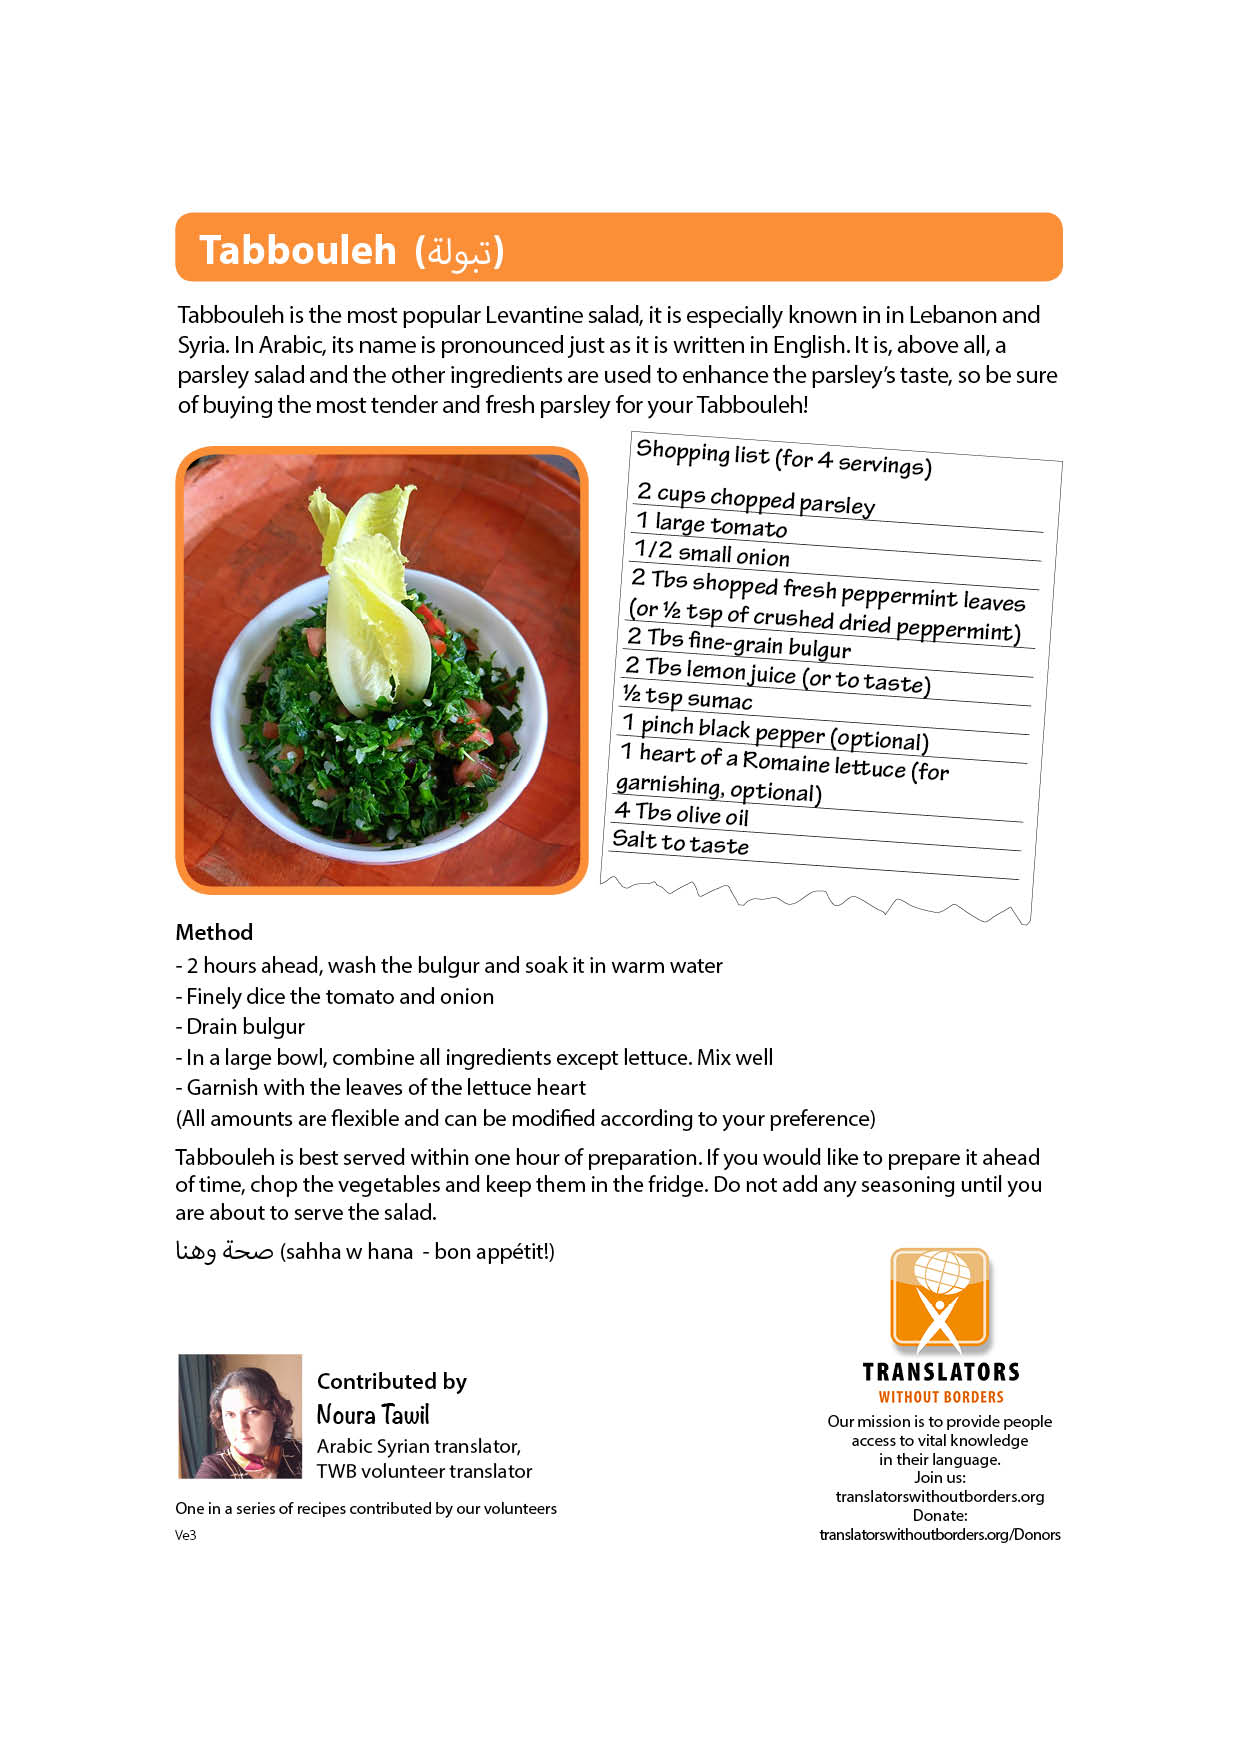 Tabbouleh translators without borders cookbook download pdf forumfinder Image collections